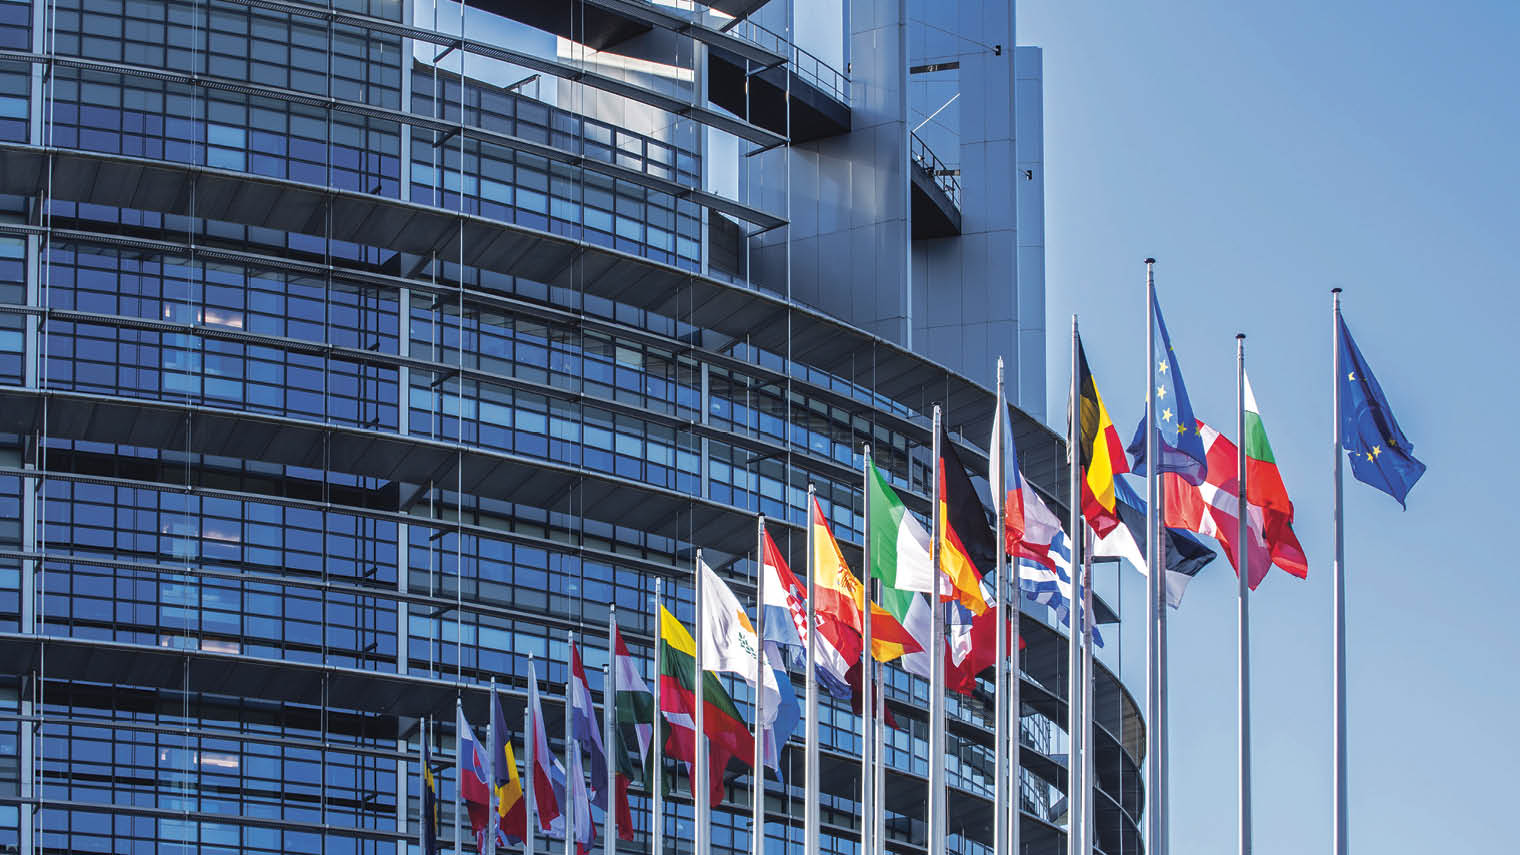 The second payment services directive (PSD2) was approved by the European Parliament in October 2015 and will apply to the UK during Brexit negotiations